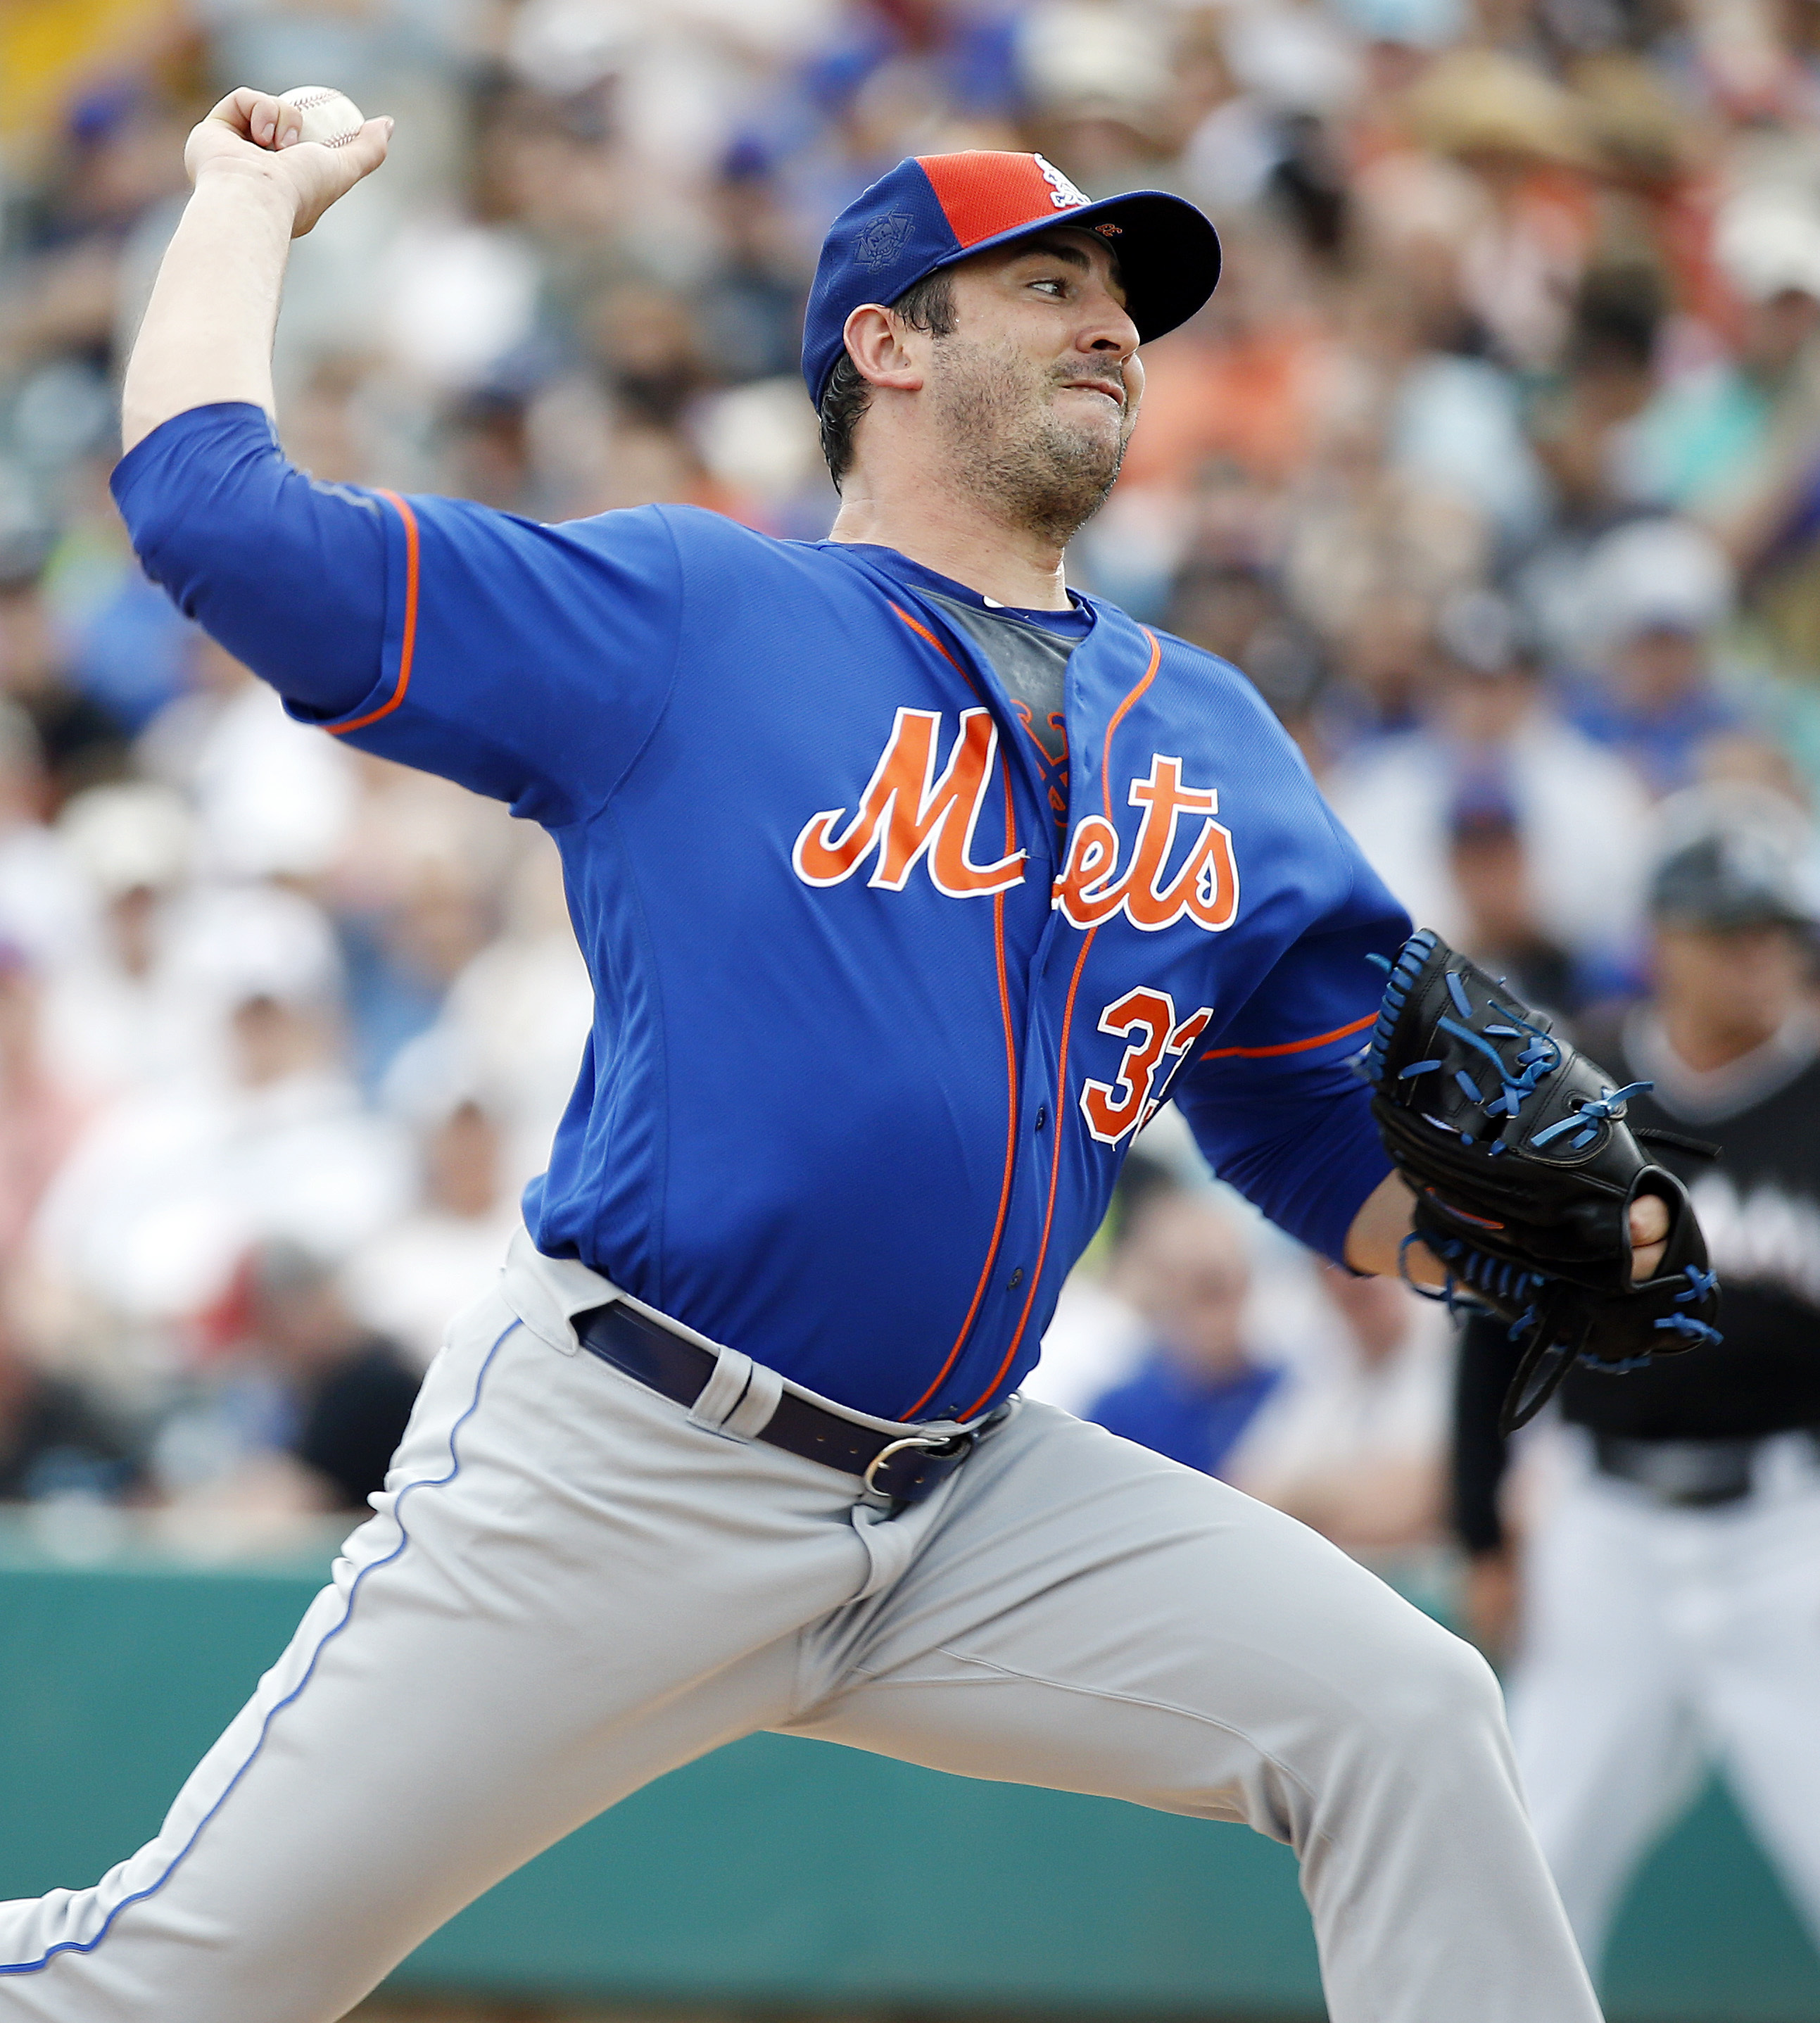 New York Mets' starting pitcher Matt Harvey delivers the ball during the first inning of an exhibition spring training baseball game against the Miami Marlins, Sunday, March 13, 2016, in Jupiter, Fla. (AP Photo/Brynn Anderson)